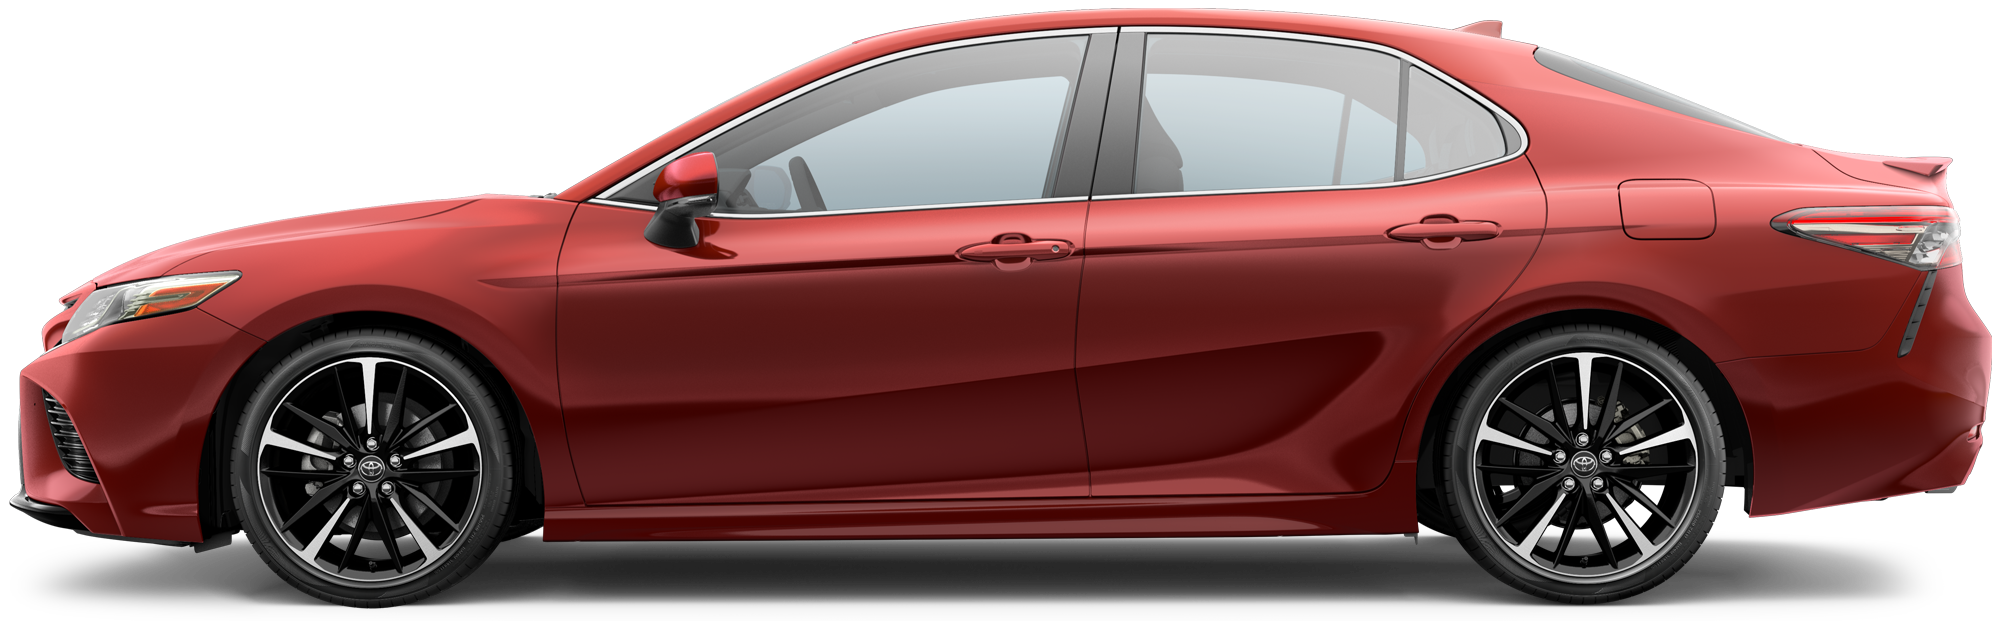 2020 Toyota Camry Sedán L